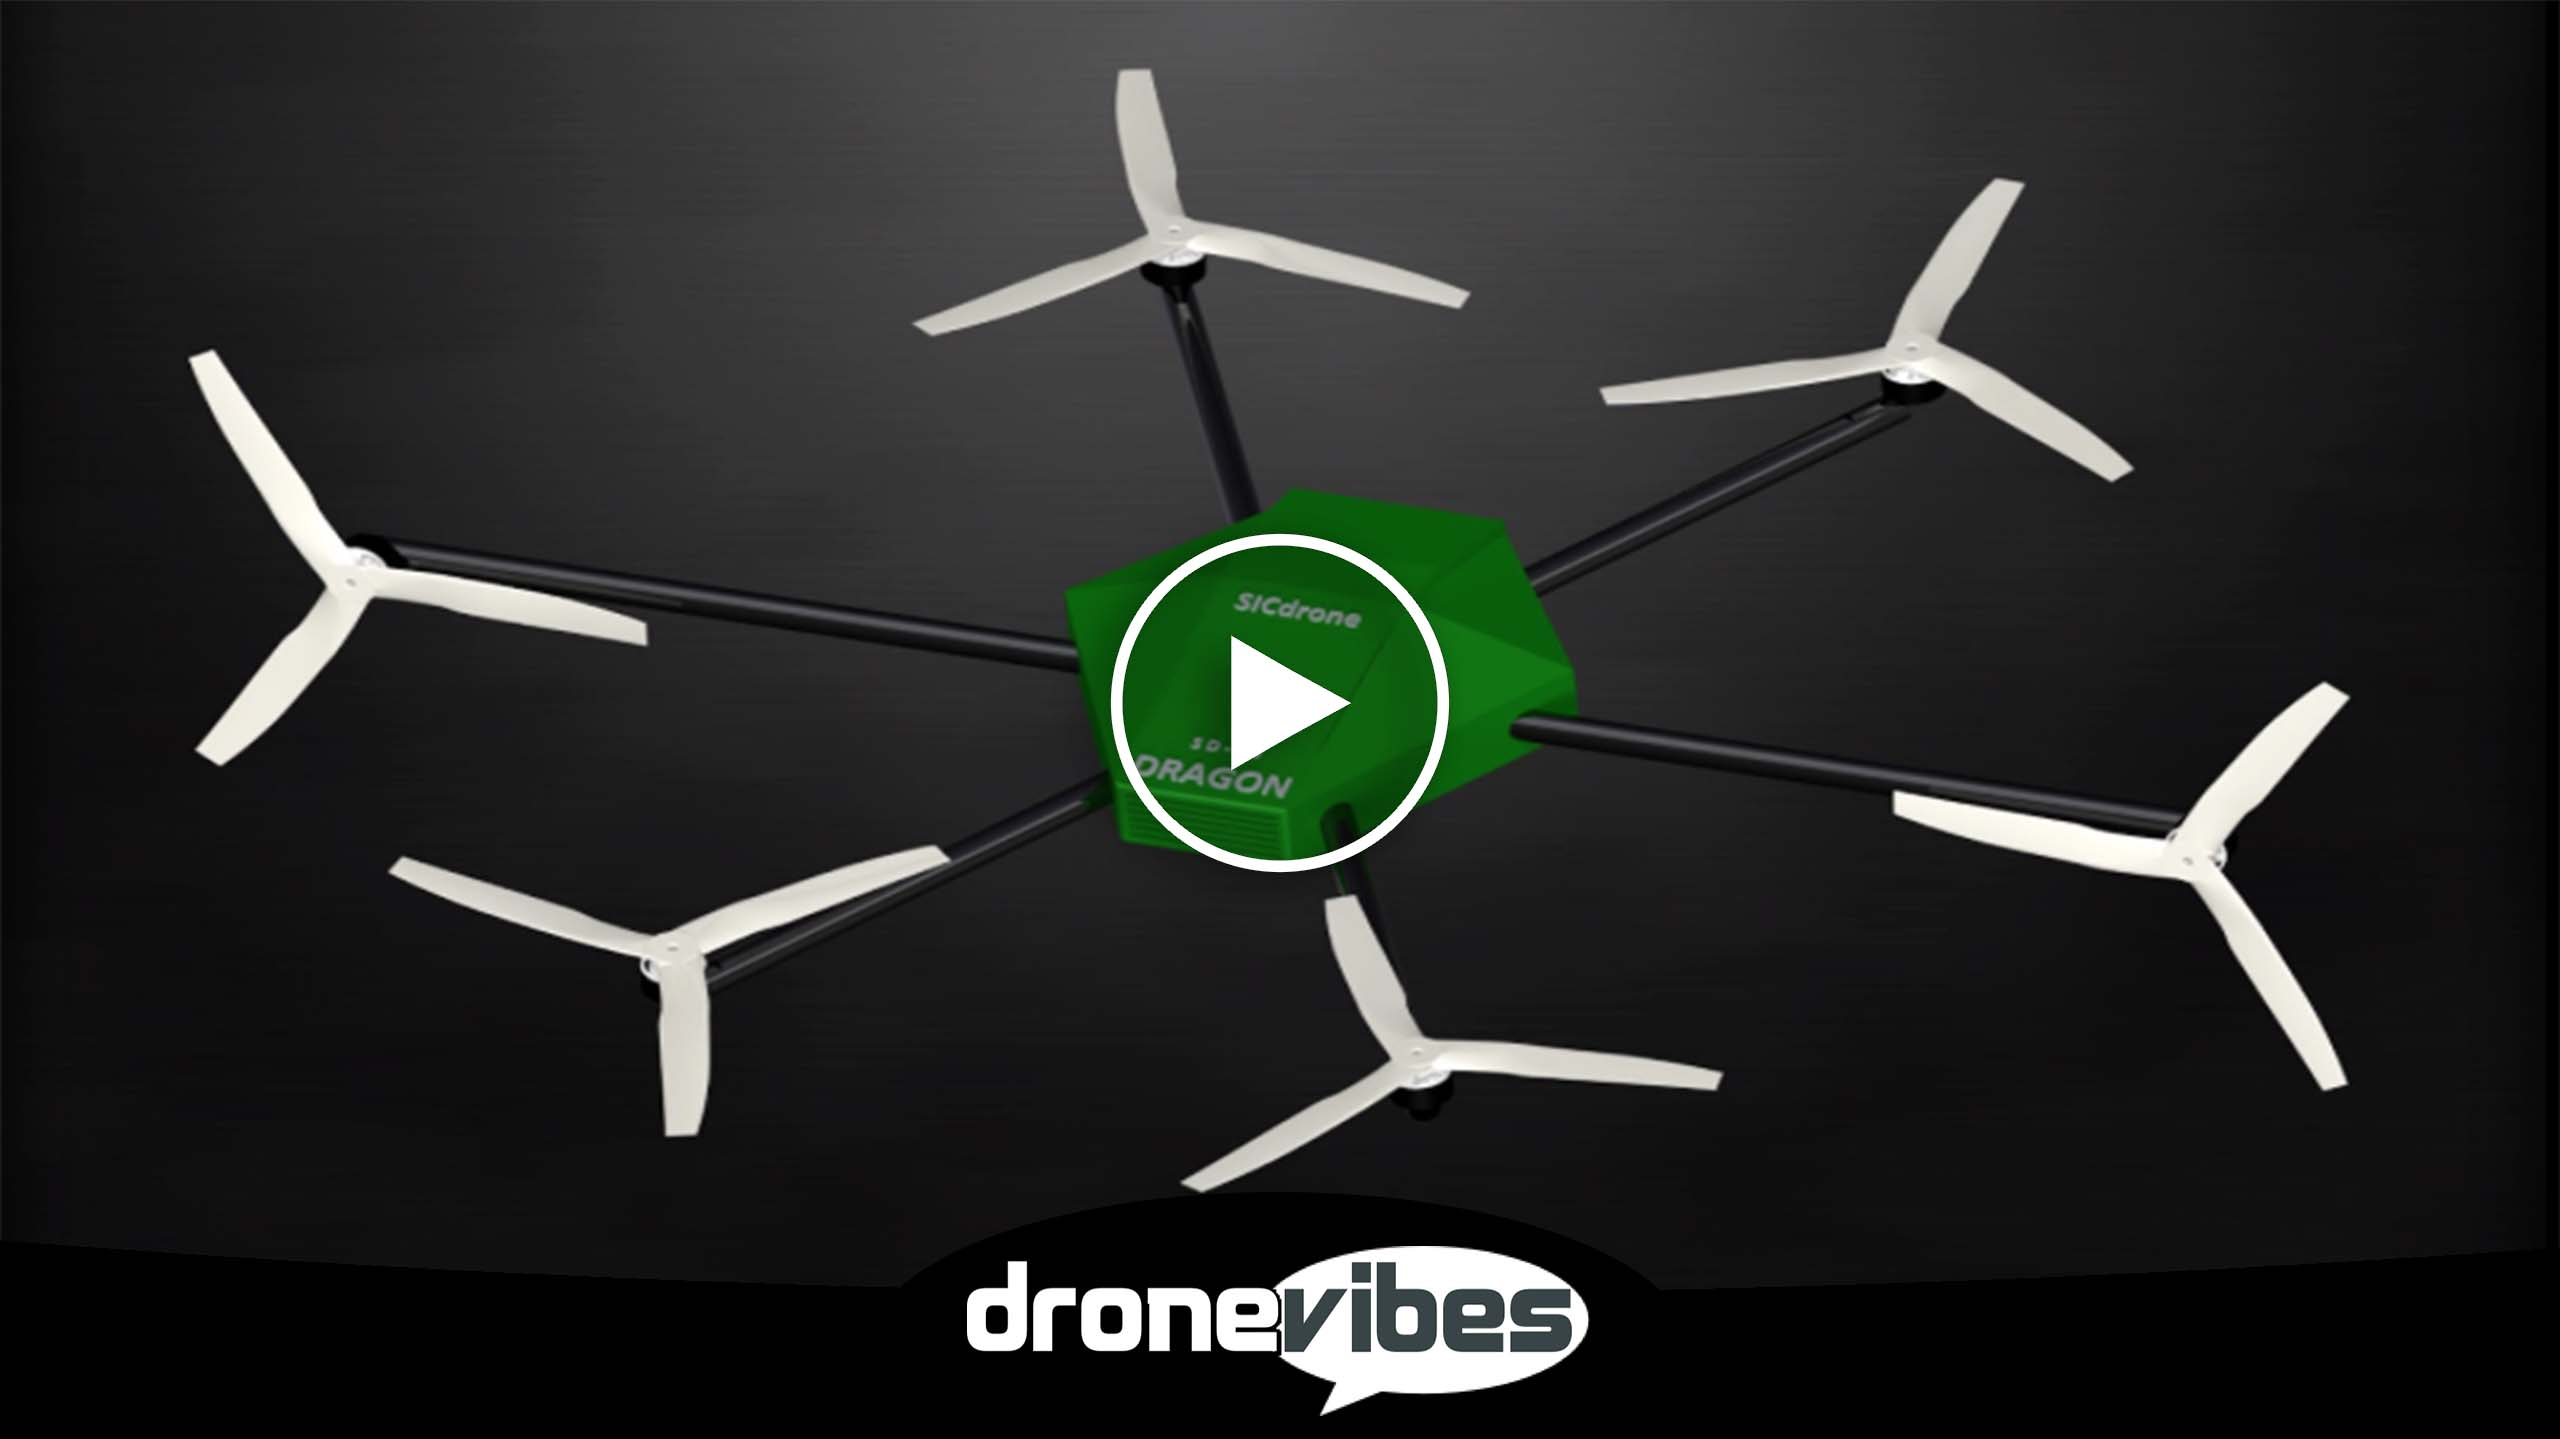 SicDrone – 100MPH Thrust Vectoring Heavy Lift Drone Solution – Interview with Dan Bosch, CEO